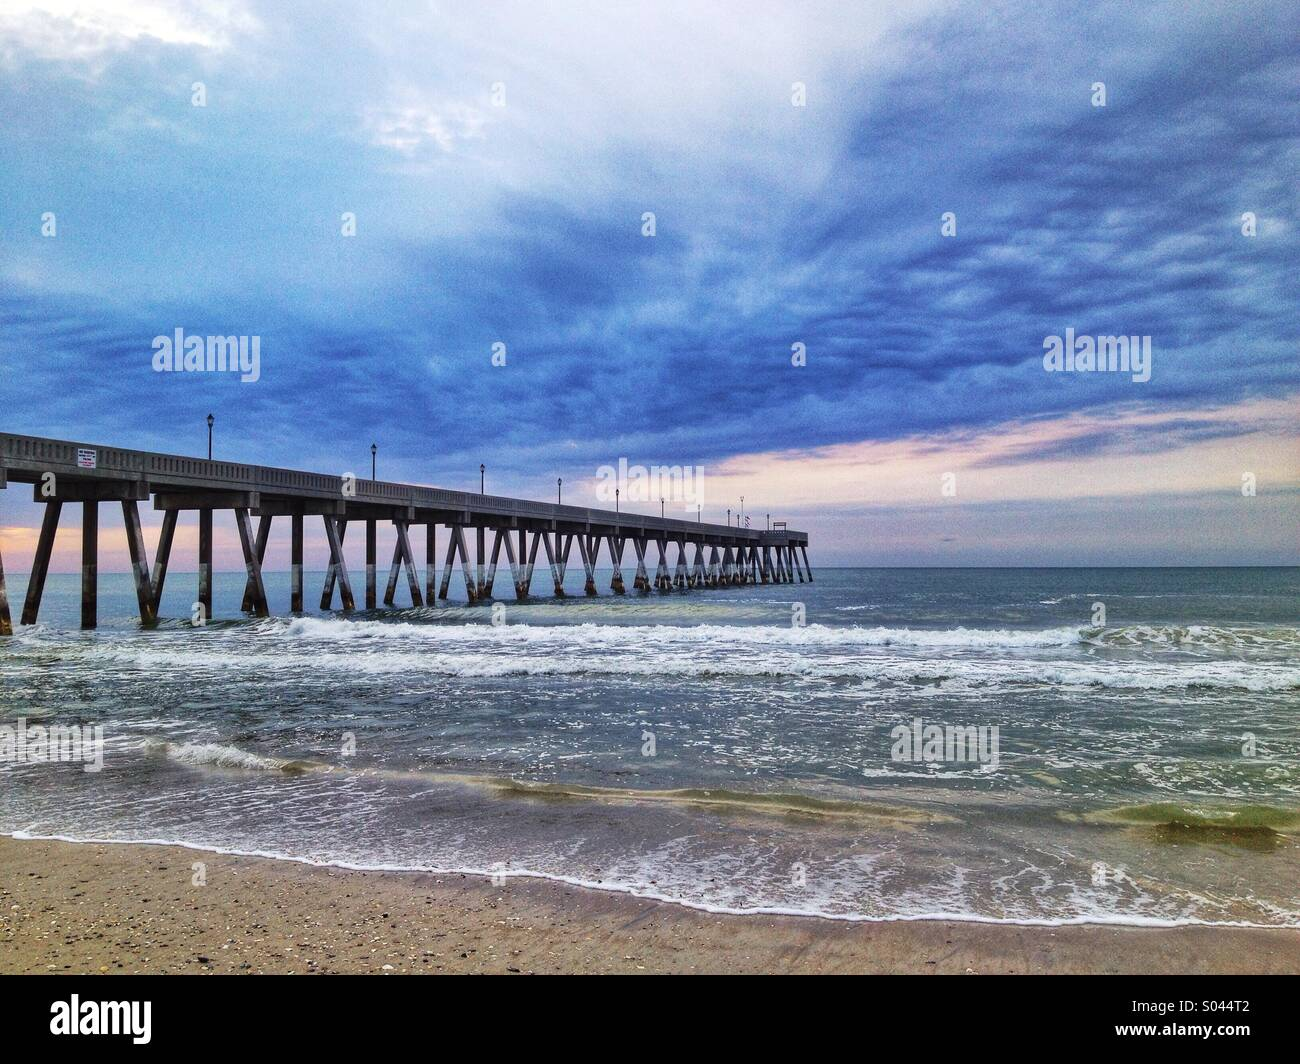 A fishing pier extends out into the Atlantic Ocean Stock Photo